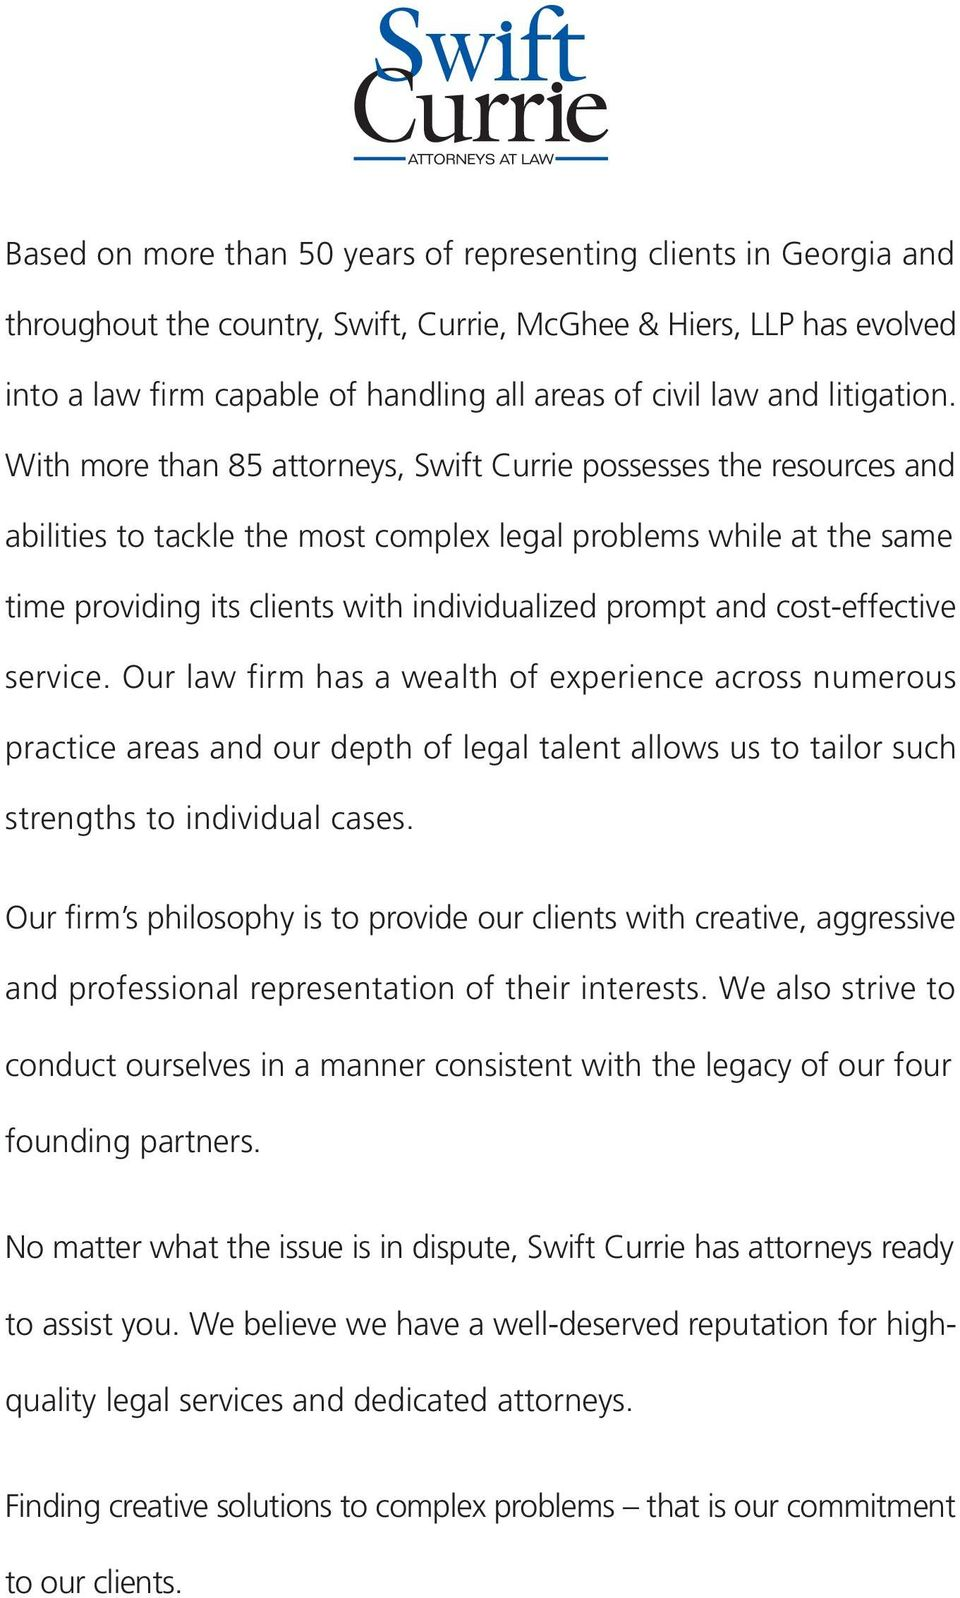 With more than 85 attorneys, Swift Currie possesses the resources and abilities to tackle the most complex legal problems while at the same time providing its clients with individualized prompt and